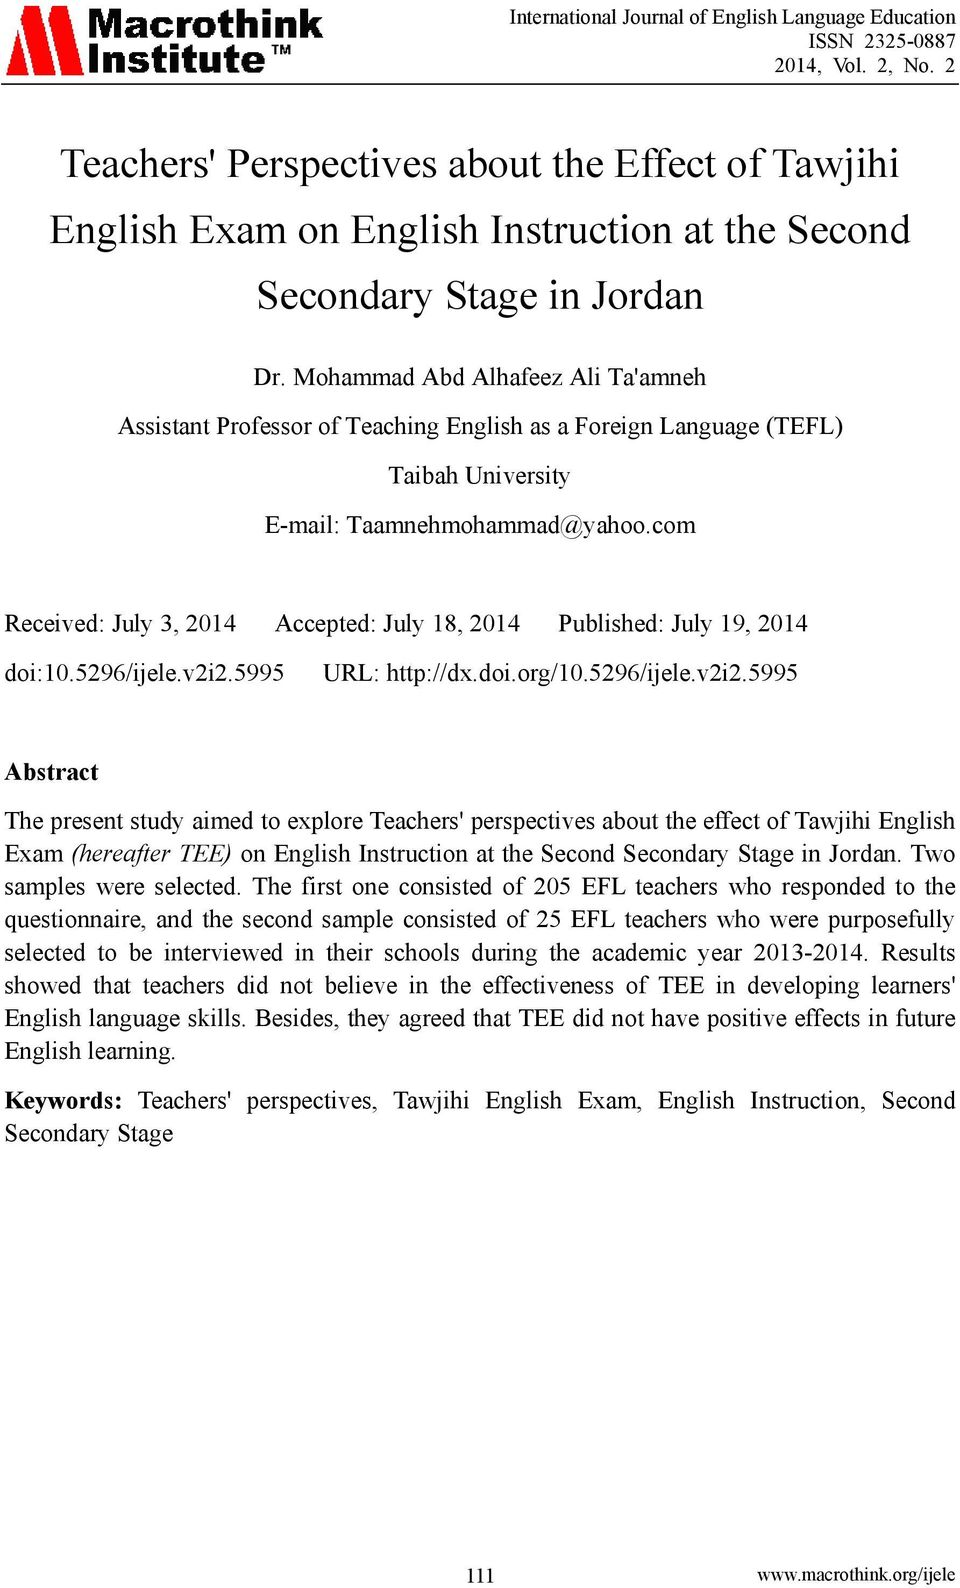 com Received: July 3, 2014 Accepted: July 18, 2014 Published: July 19, 2014 doi:10.5296/ijele.v2i2.